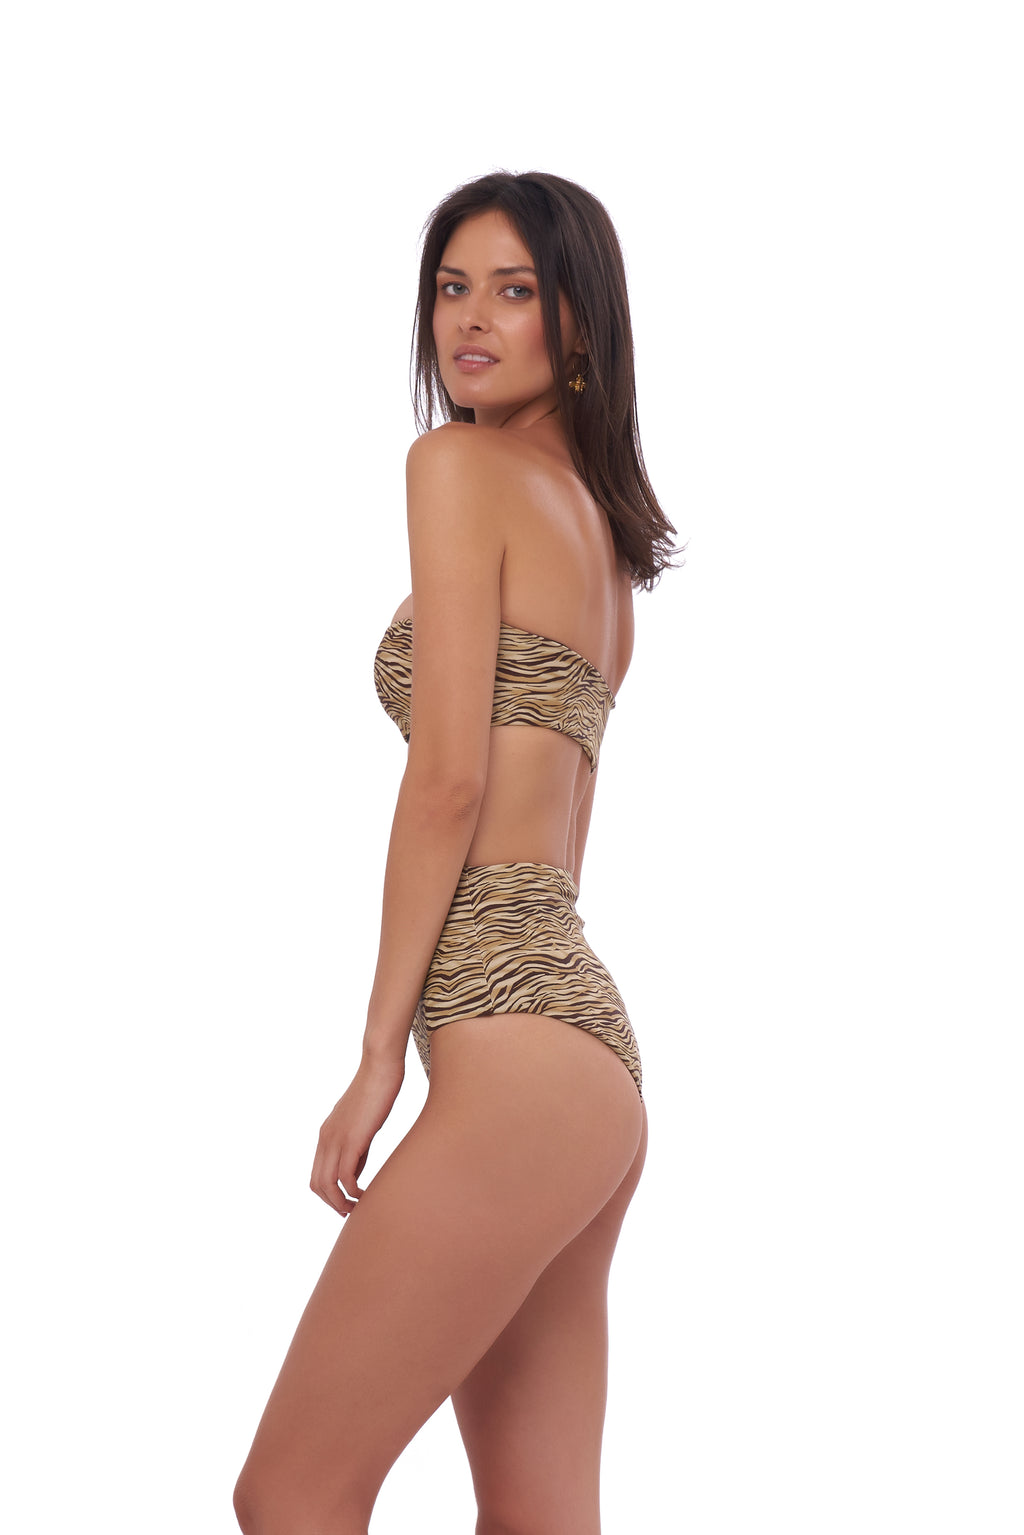 Storm Swimwear - Cannes - High Waist Bikini Bottom in Tiger Print